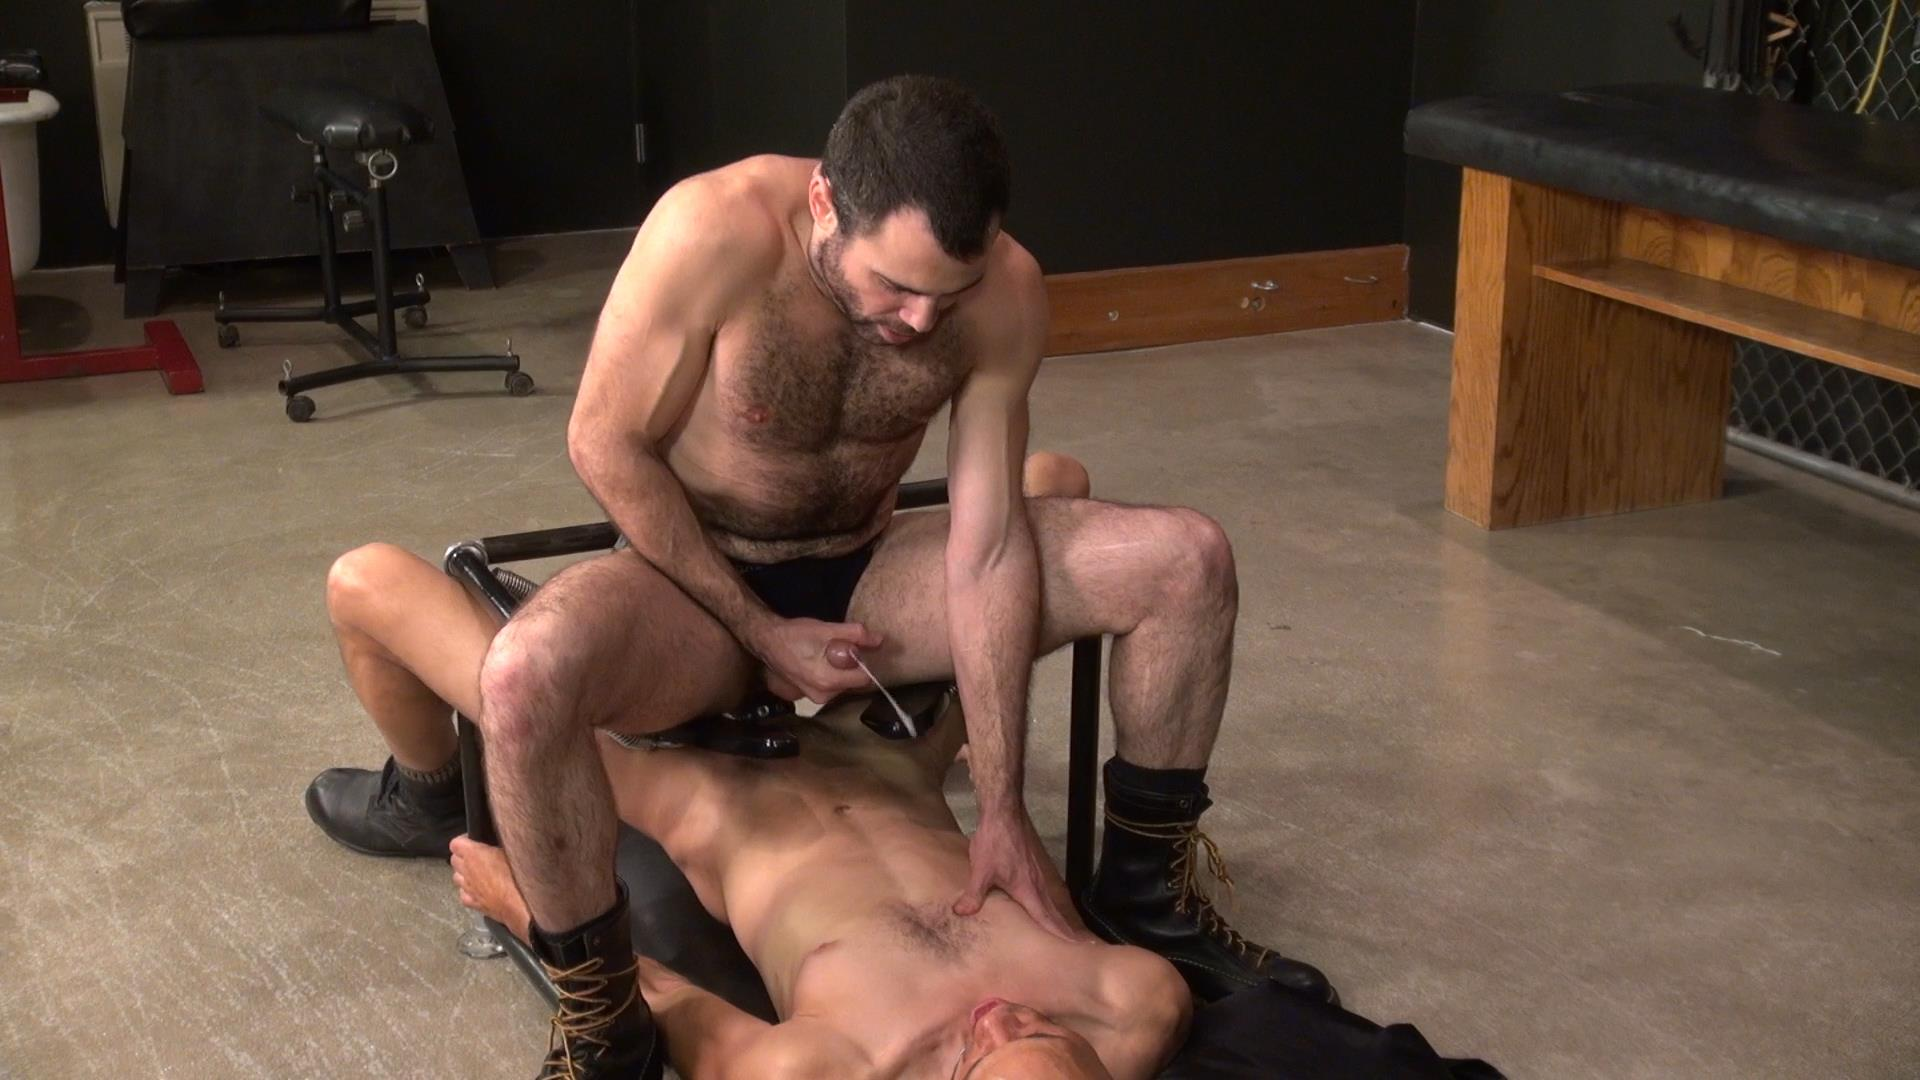 Raw-and-Rough-Dusty-Williams-and-Seth-Patrick-Barebacking-A-Stranger-at-A-Sex-Club-Hairy-Amateur-Gay-Porn-04 Barebacking A Hairy Guy At A Gay Sex Club